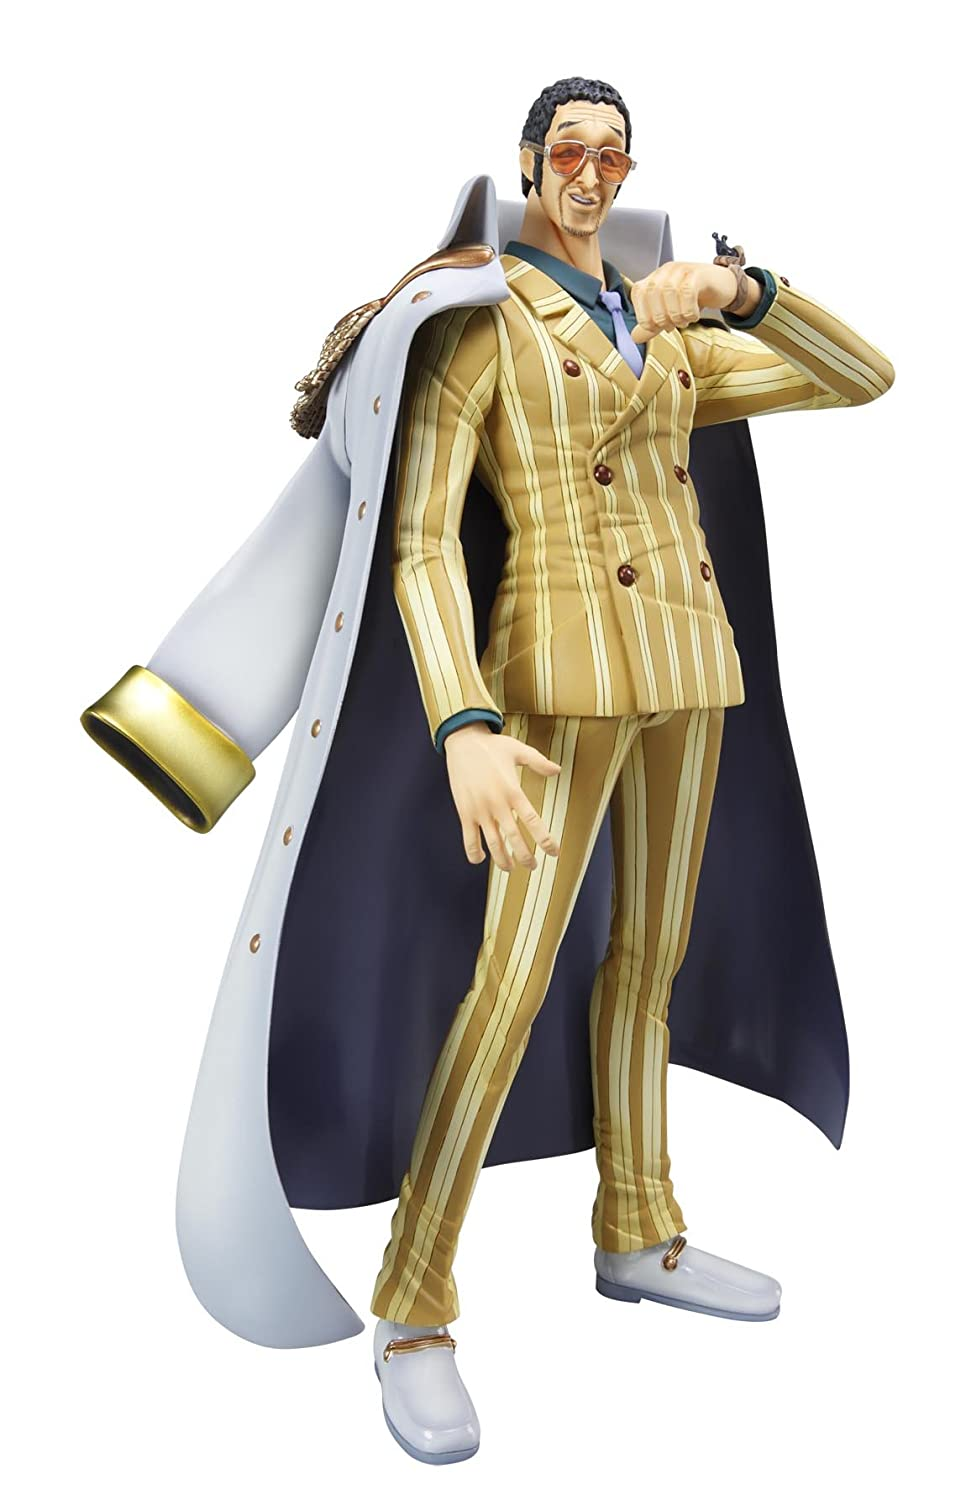 Portrait.Of.Pirates P.O.P One Piece NEO-DX Statue Kizaru Borsalino PVC Figure by Megahouse